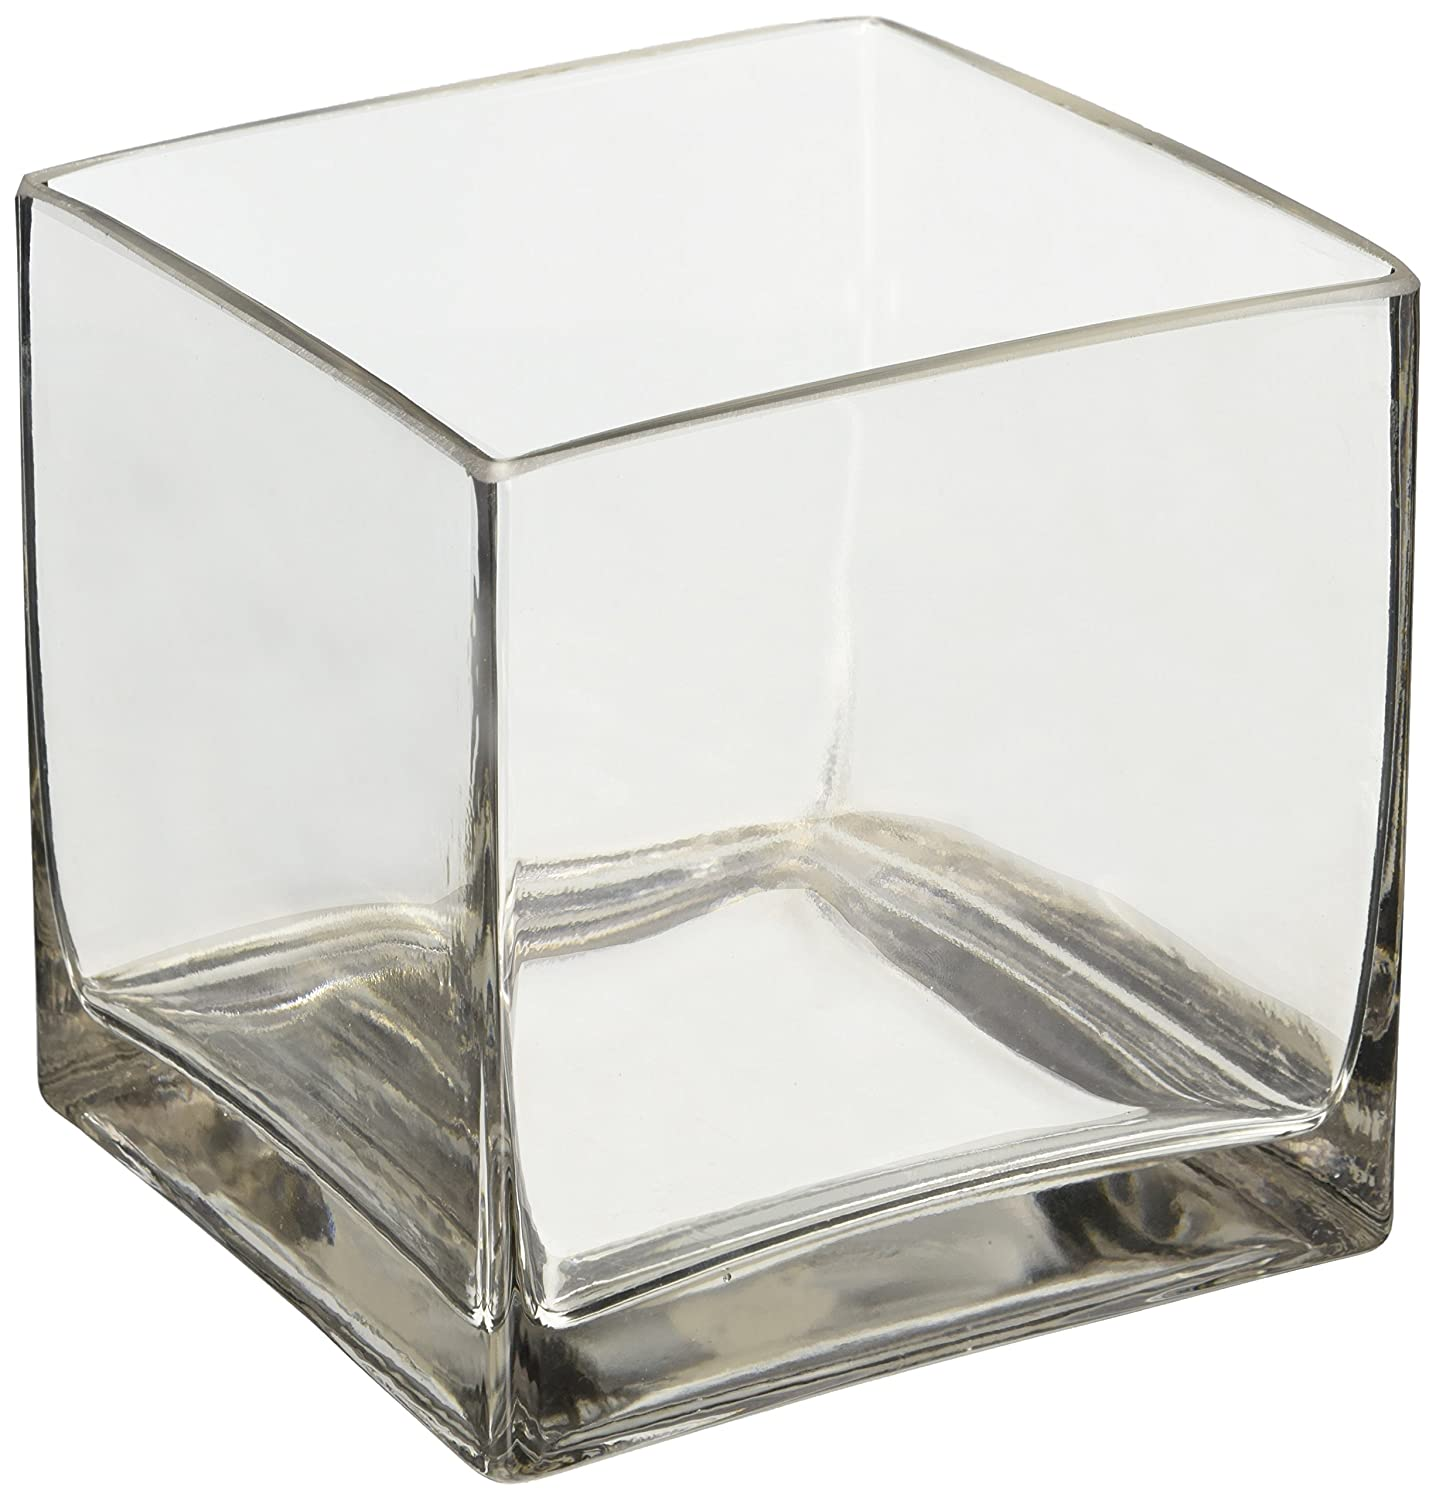 large by candleholder pack dp glass cube vasefill excel of centerpiece kitchen amazon vase square com clear cys oversize inch home